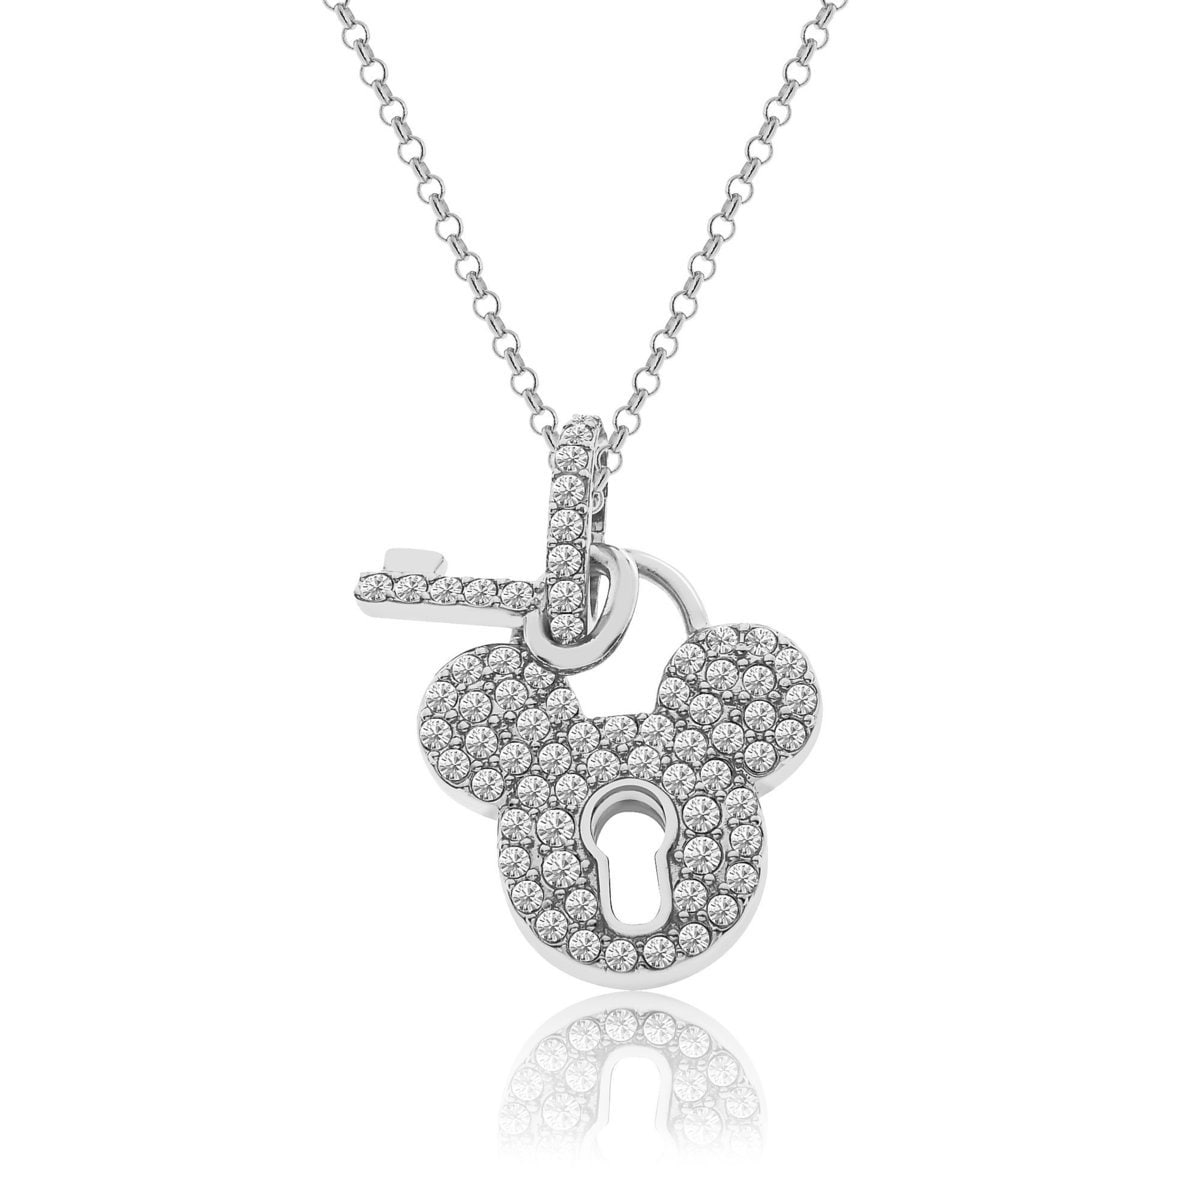 locks necklaces diamonds fmt id pendants fit tiffany heart in ed with rose pendant wid gold hei jewelry lock constrain